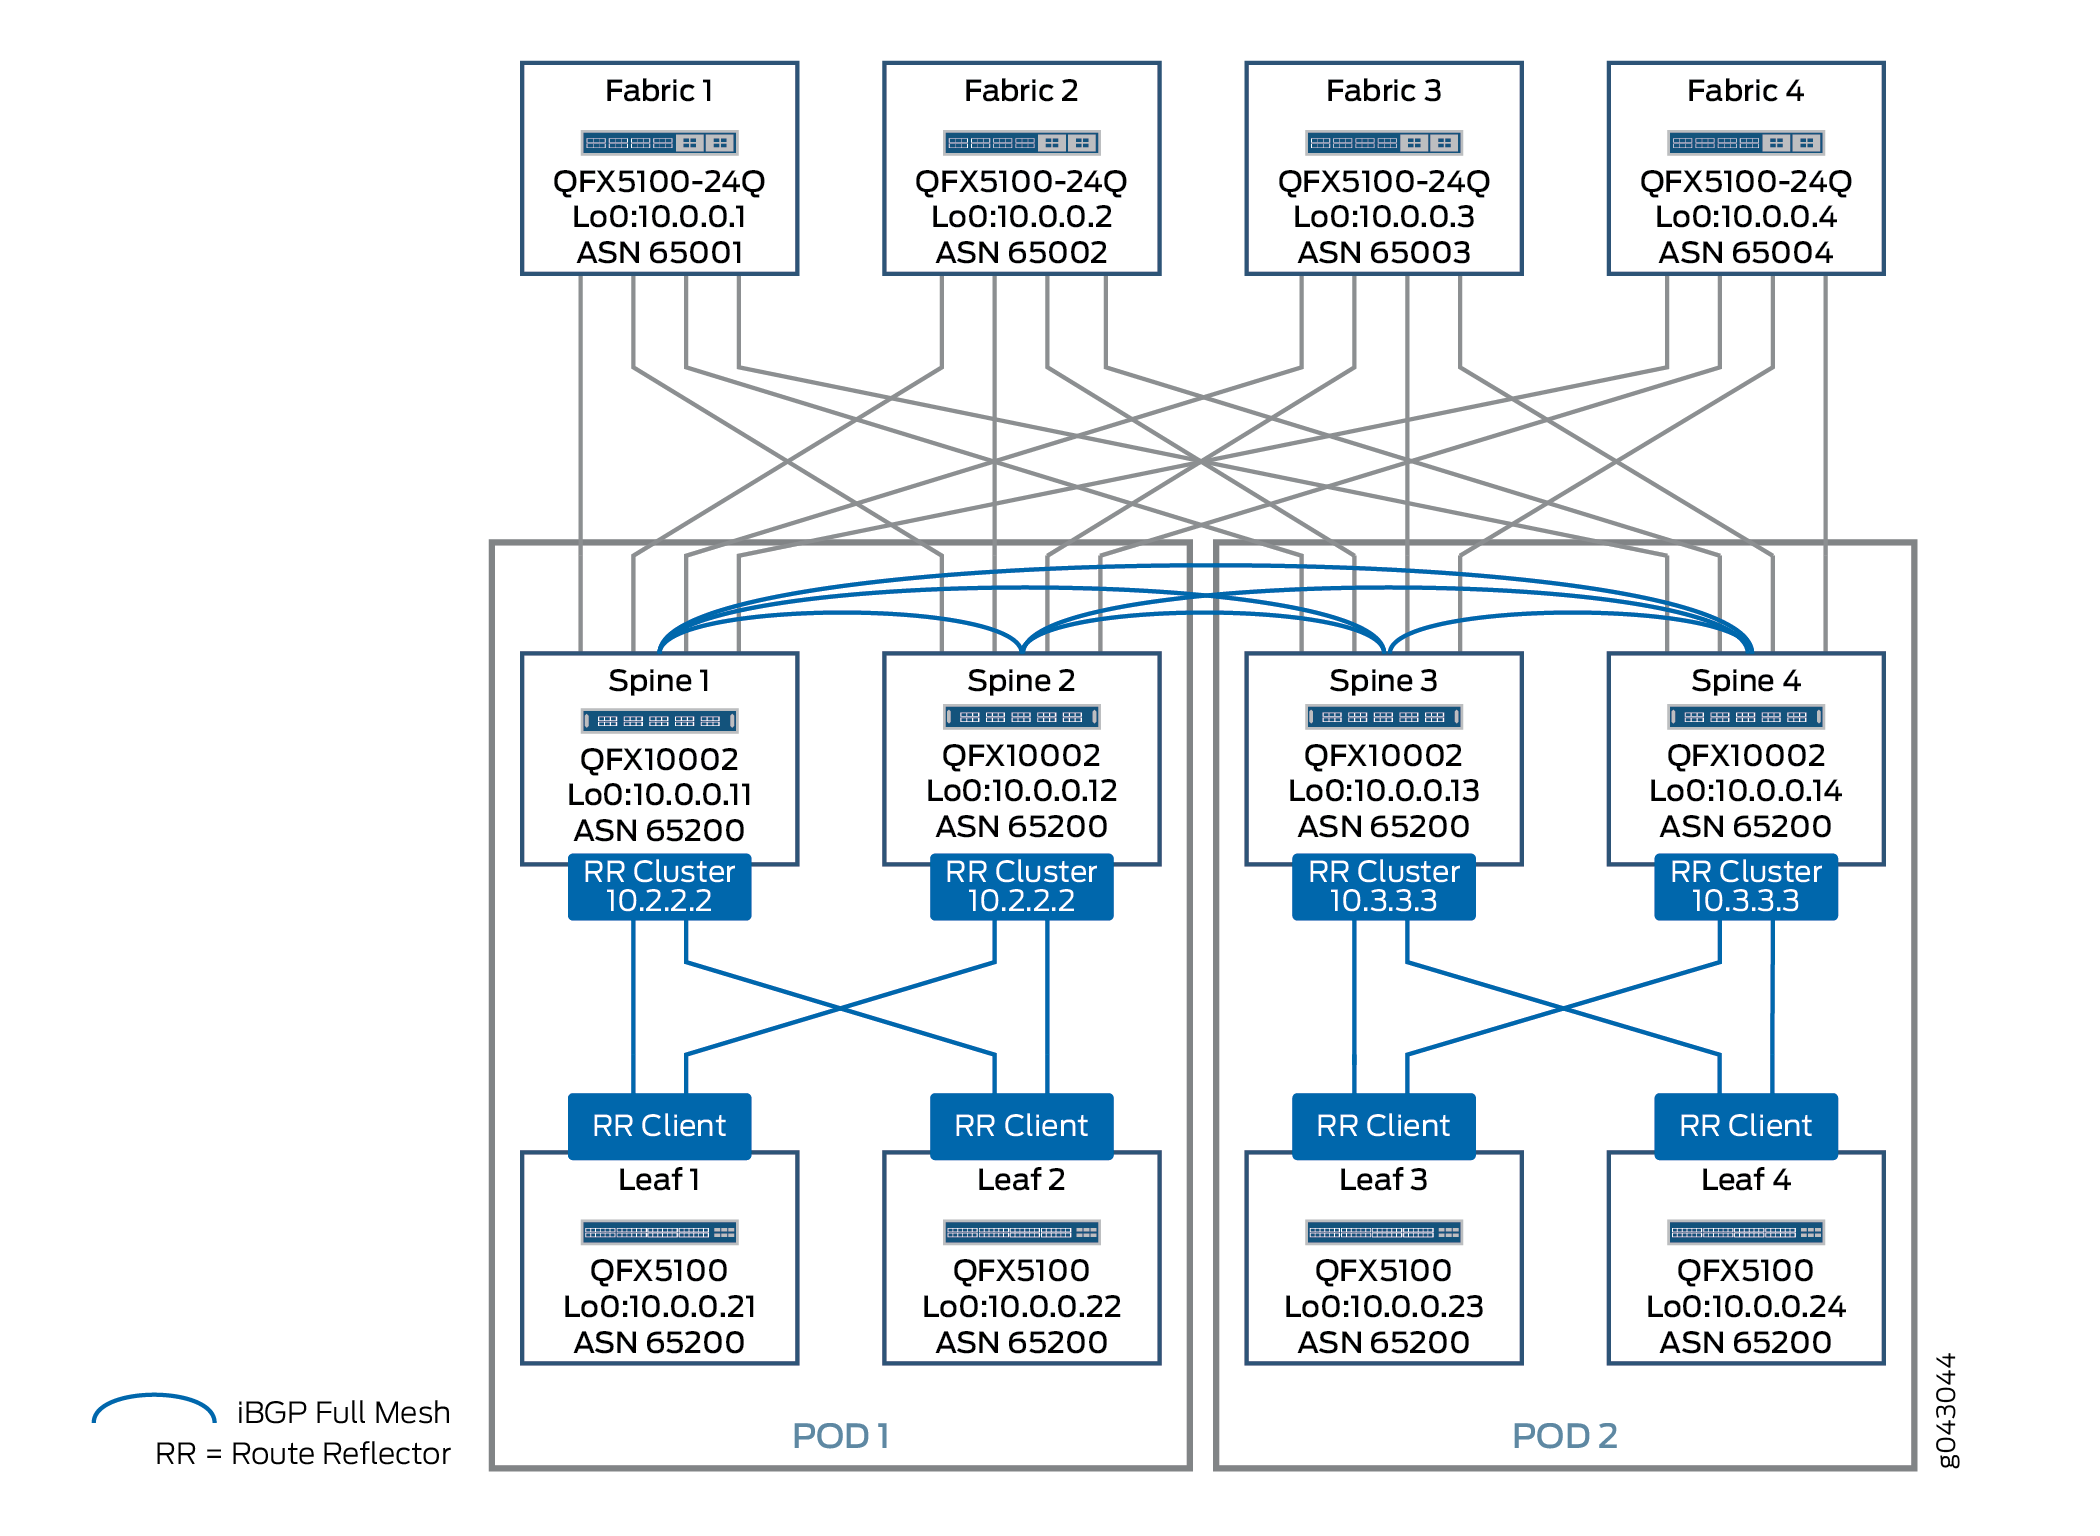 IaaS: EVPN and VXLAN Solution - Overlay Topology